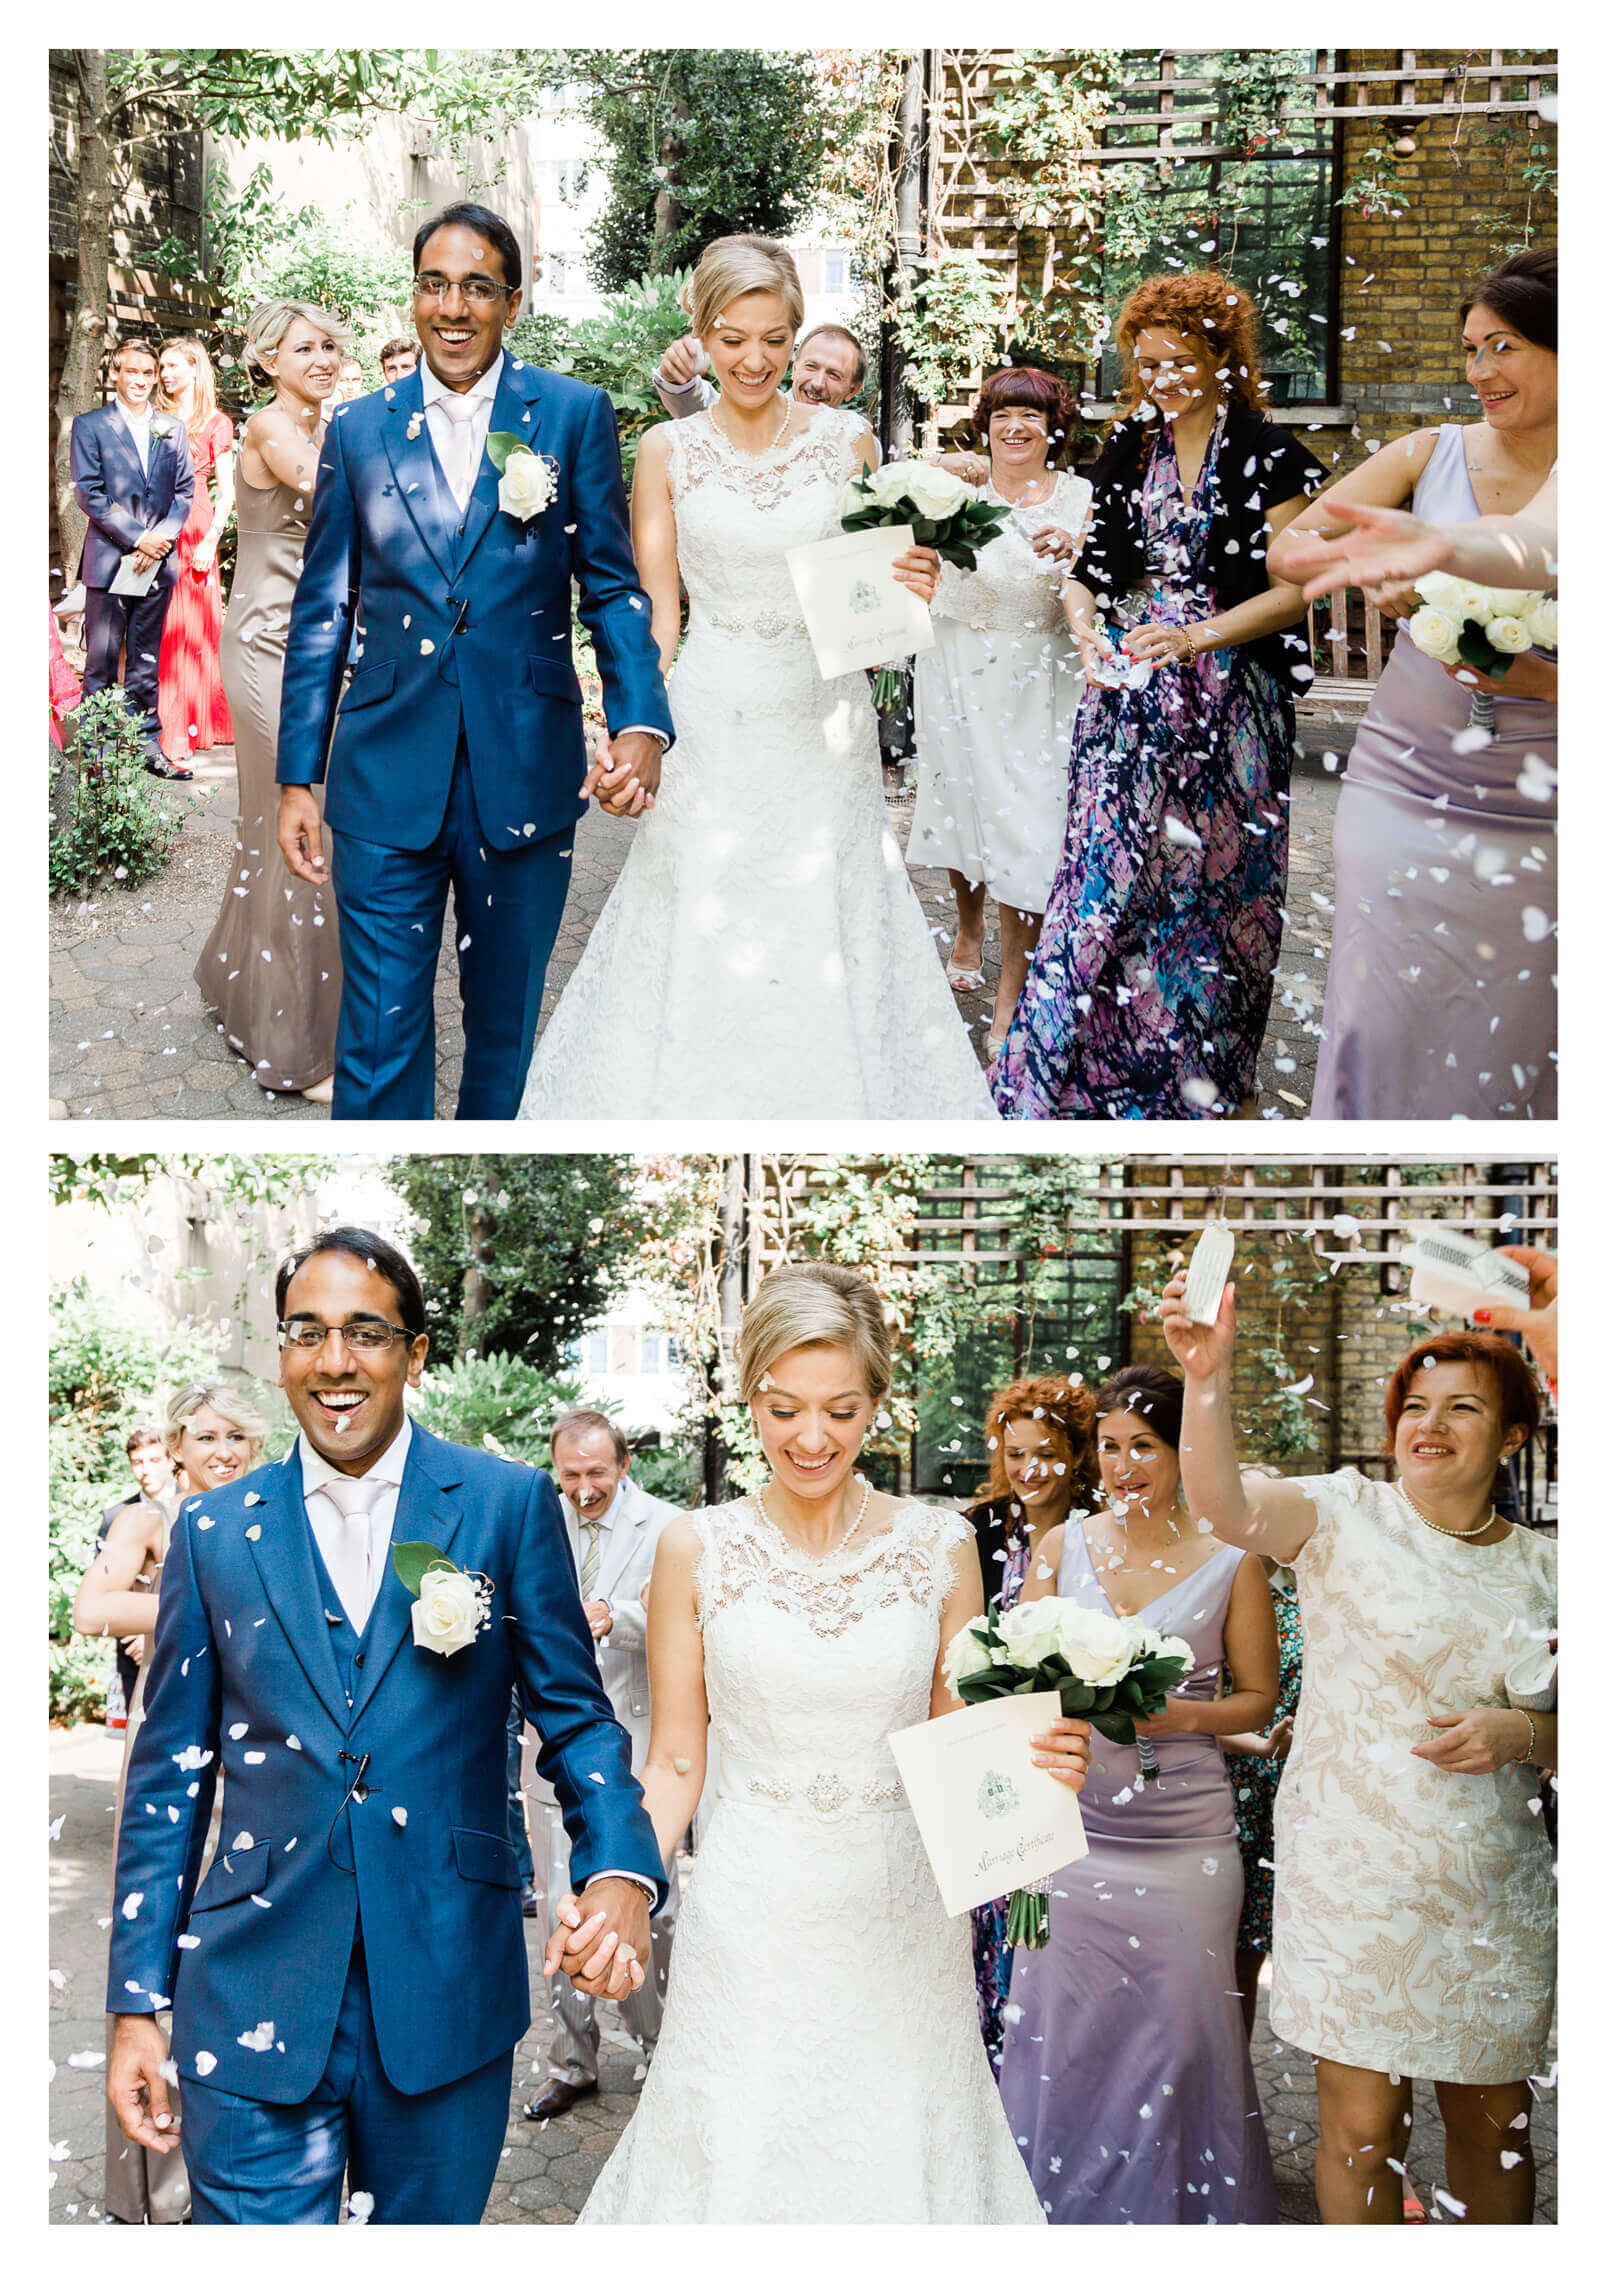 Bromley Public Hall wedding ceremony floral confetti tunnel | London photographer